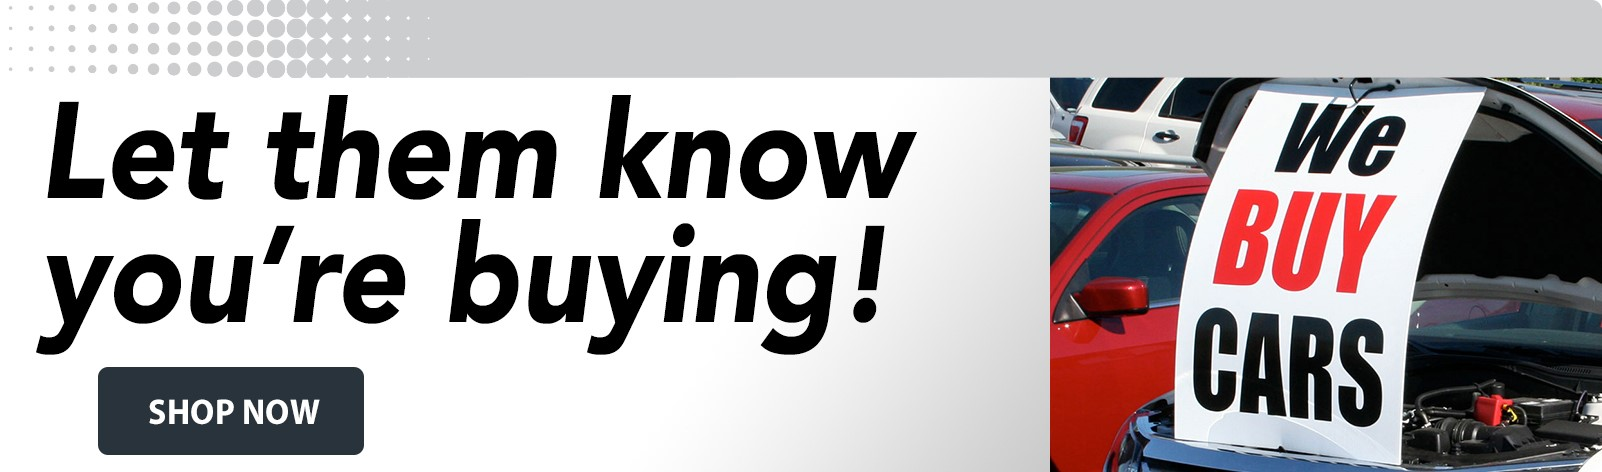 We Buy Cars Advertising - Let them know you're buying!